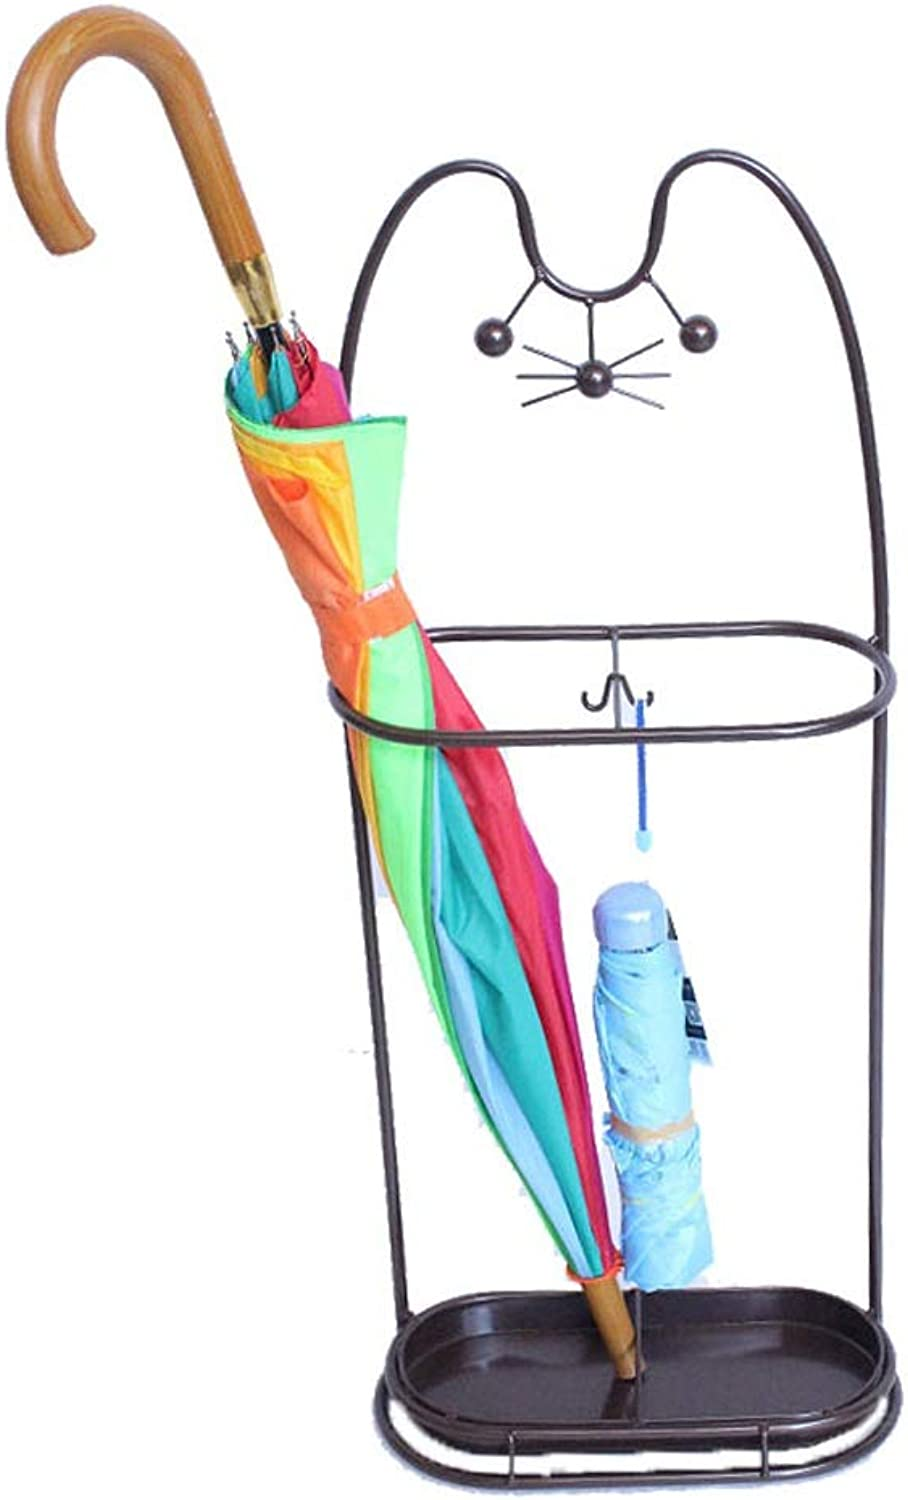 DDSS Umbrella bucket Lucky cat Wrought Iron Household Umbrella Stand Hanging Umbrella Storage Rack Hotel Shop Door Umbrella Rack Storage Bucket - 4 colors Optional  -  (color   Black)